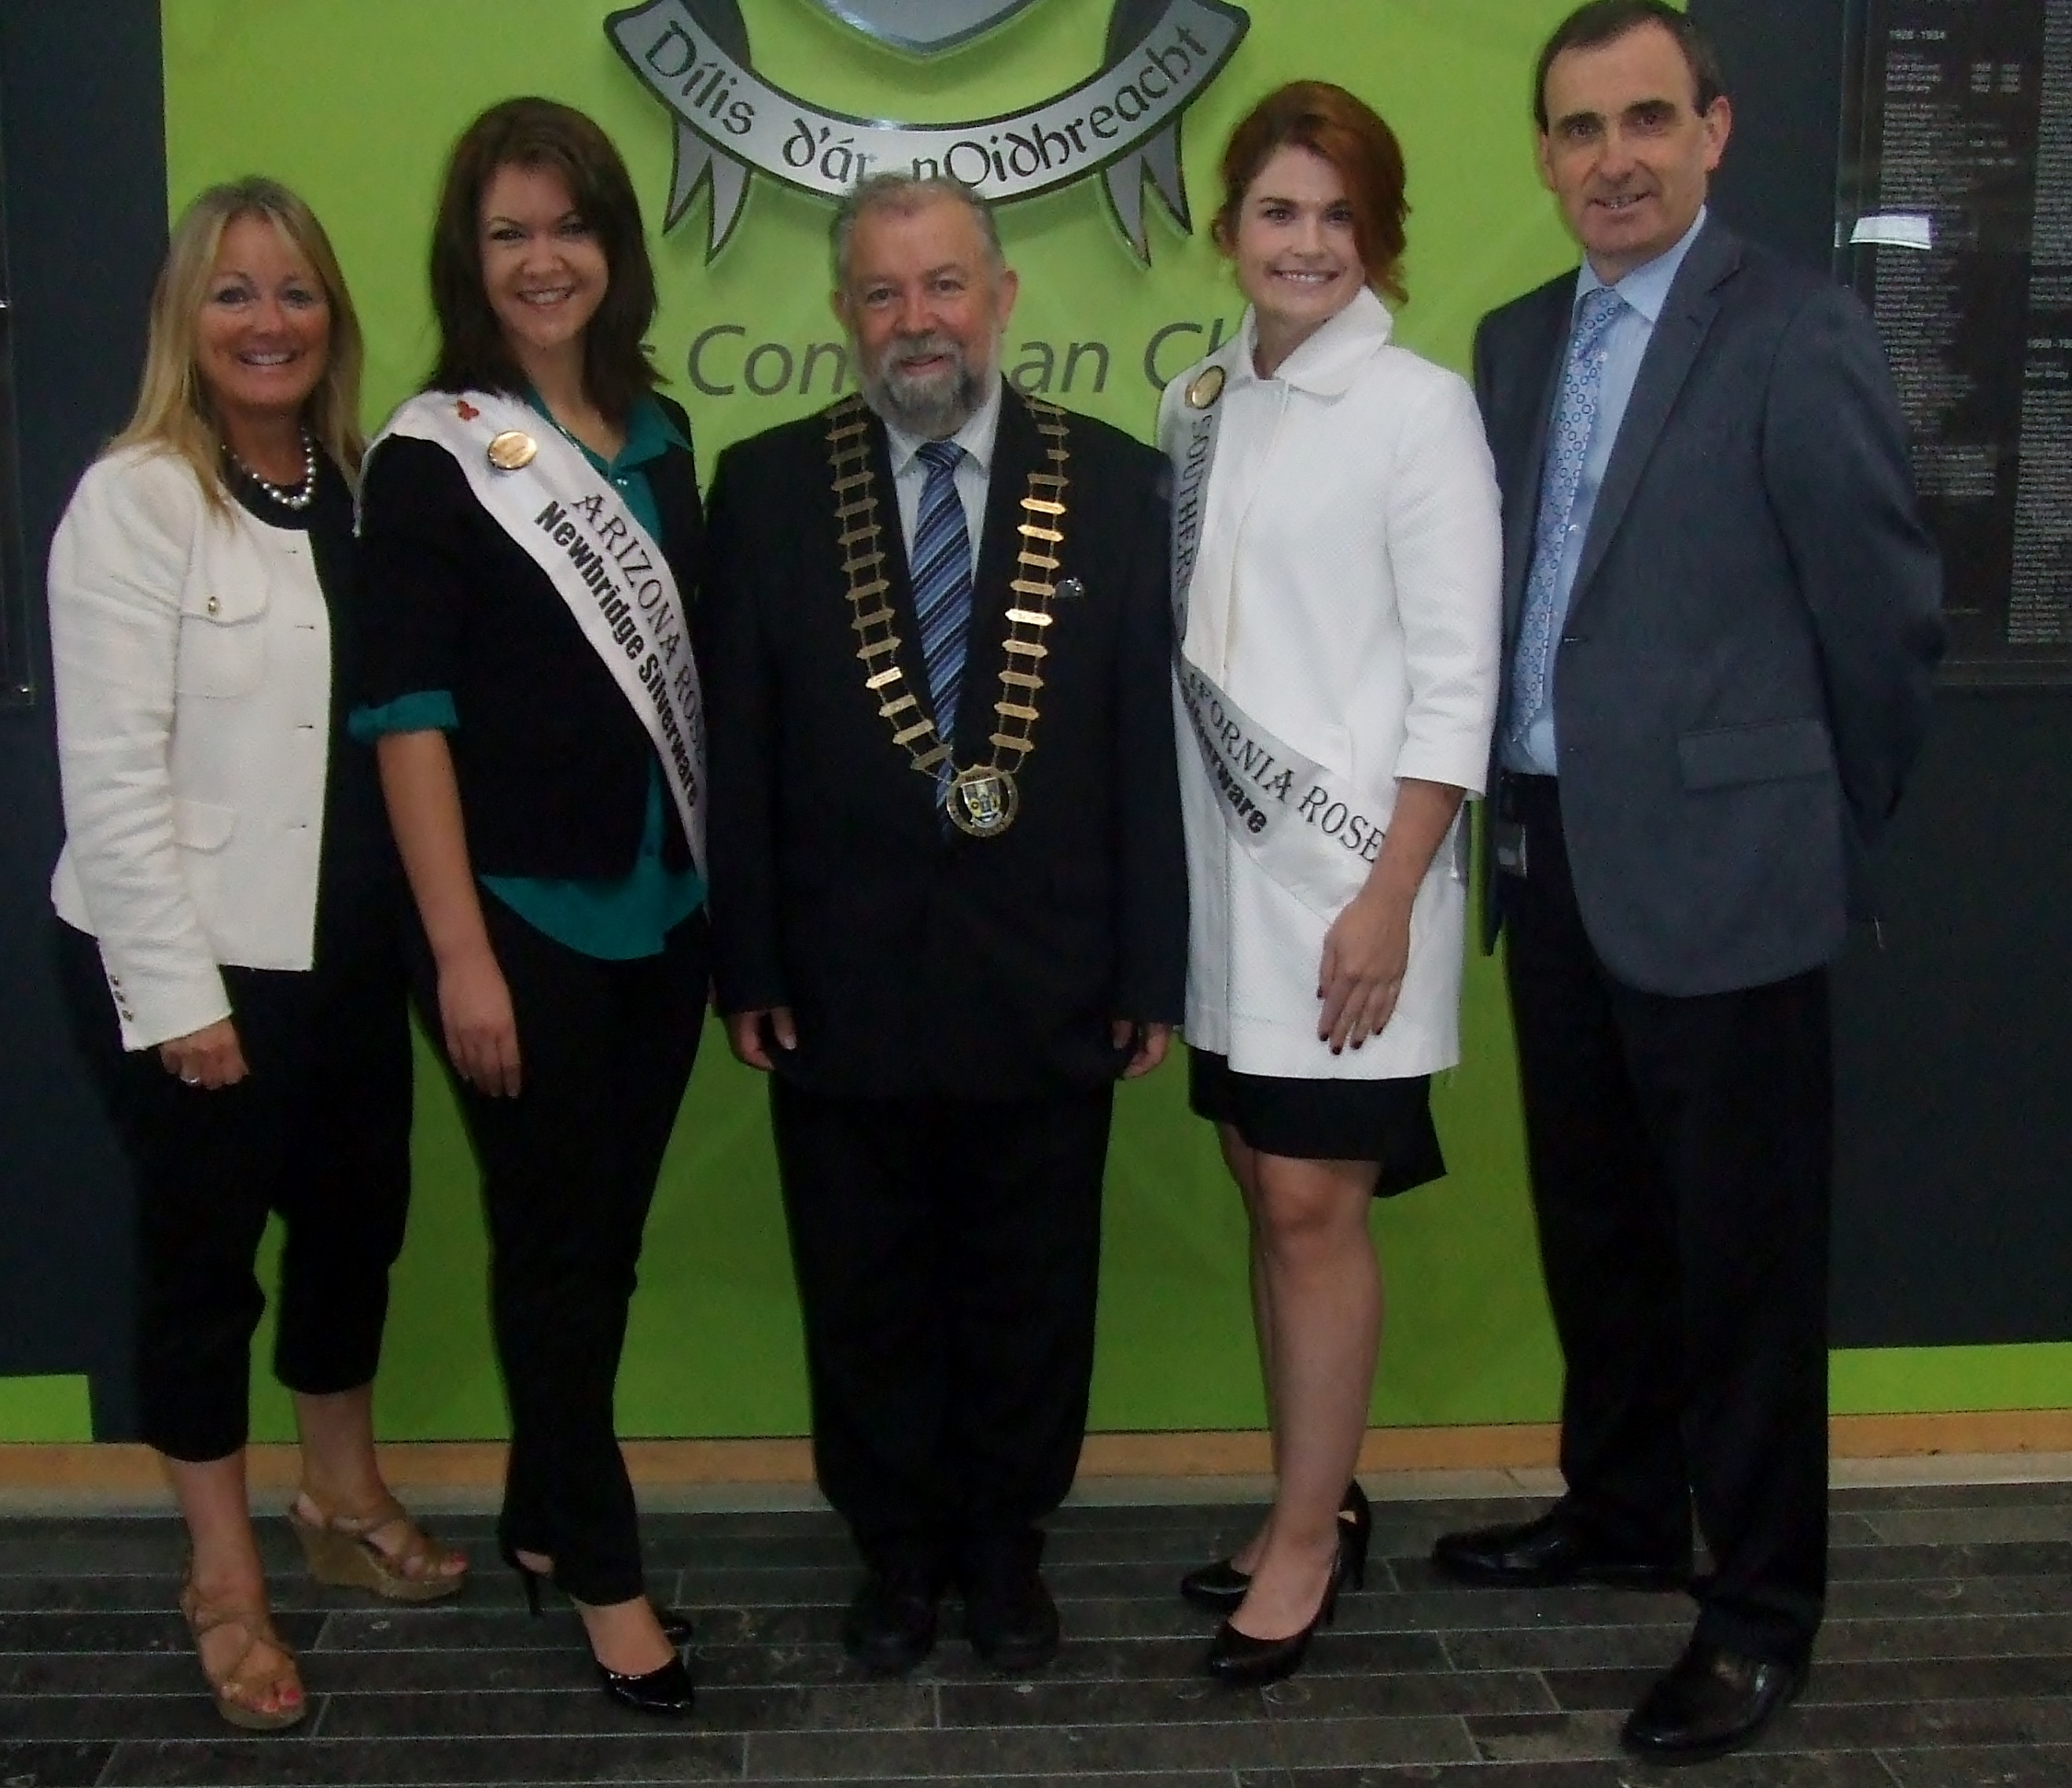 Cllr. Mary Howard of the Ennis Phoenix Twinning Board, Arizona Rose Sarah Hines, Cllr. John Crowe, South California Rose Katie Bergman, and Ger Dollard, Director of Services, Clare County Council